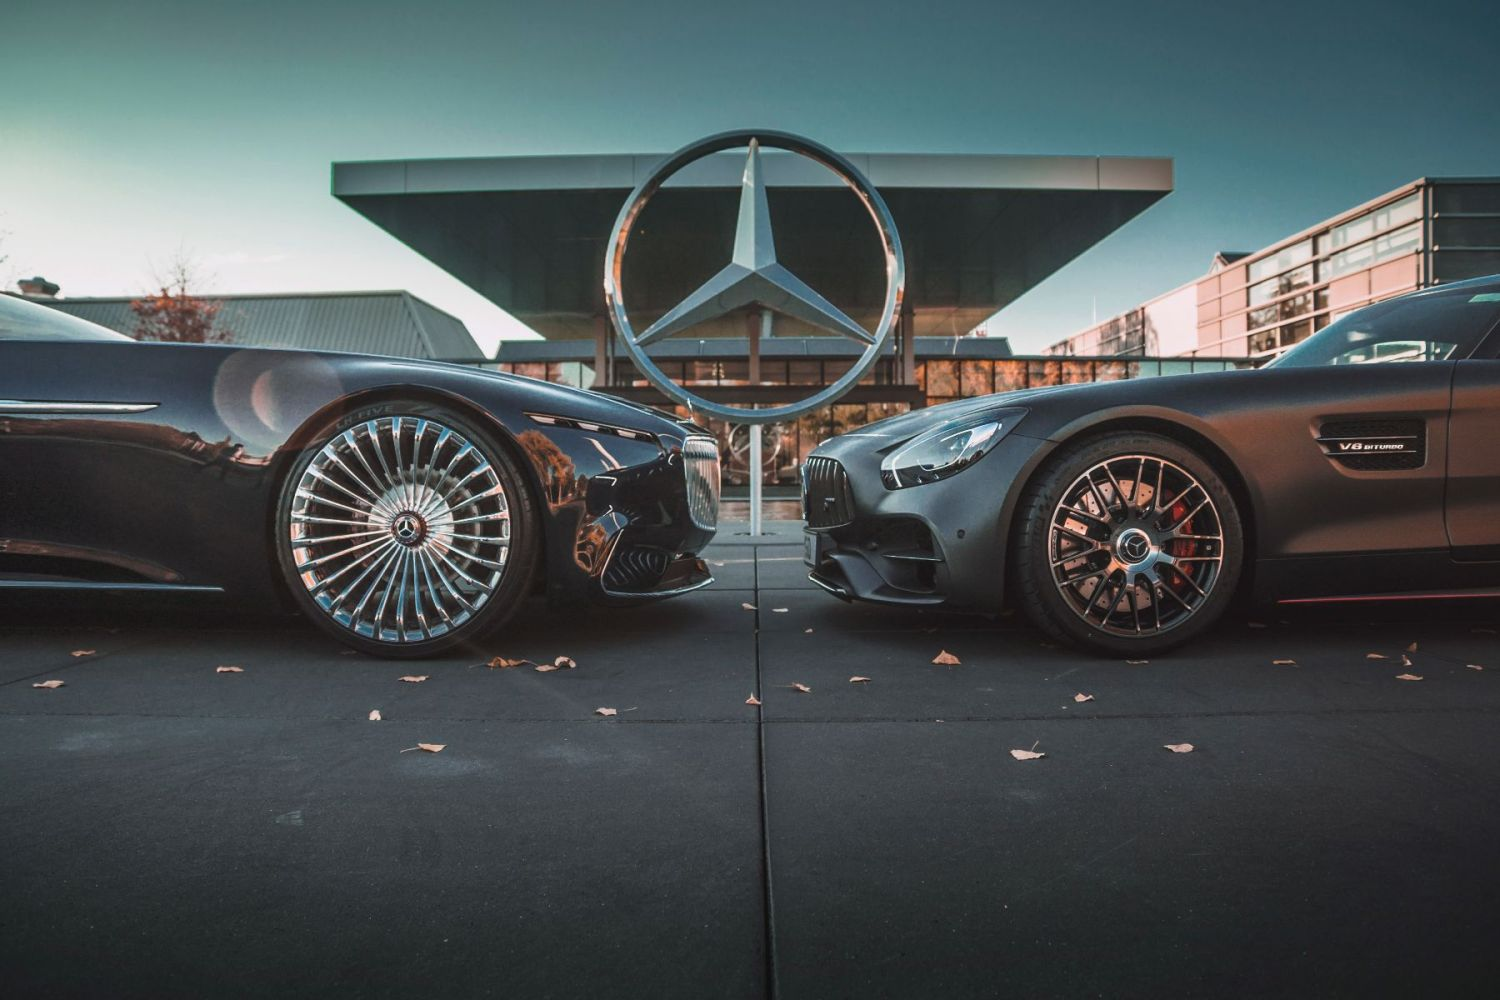 Mercedes Instagram 1 billion likes